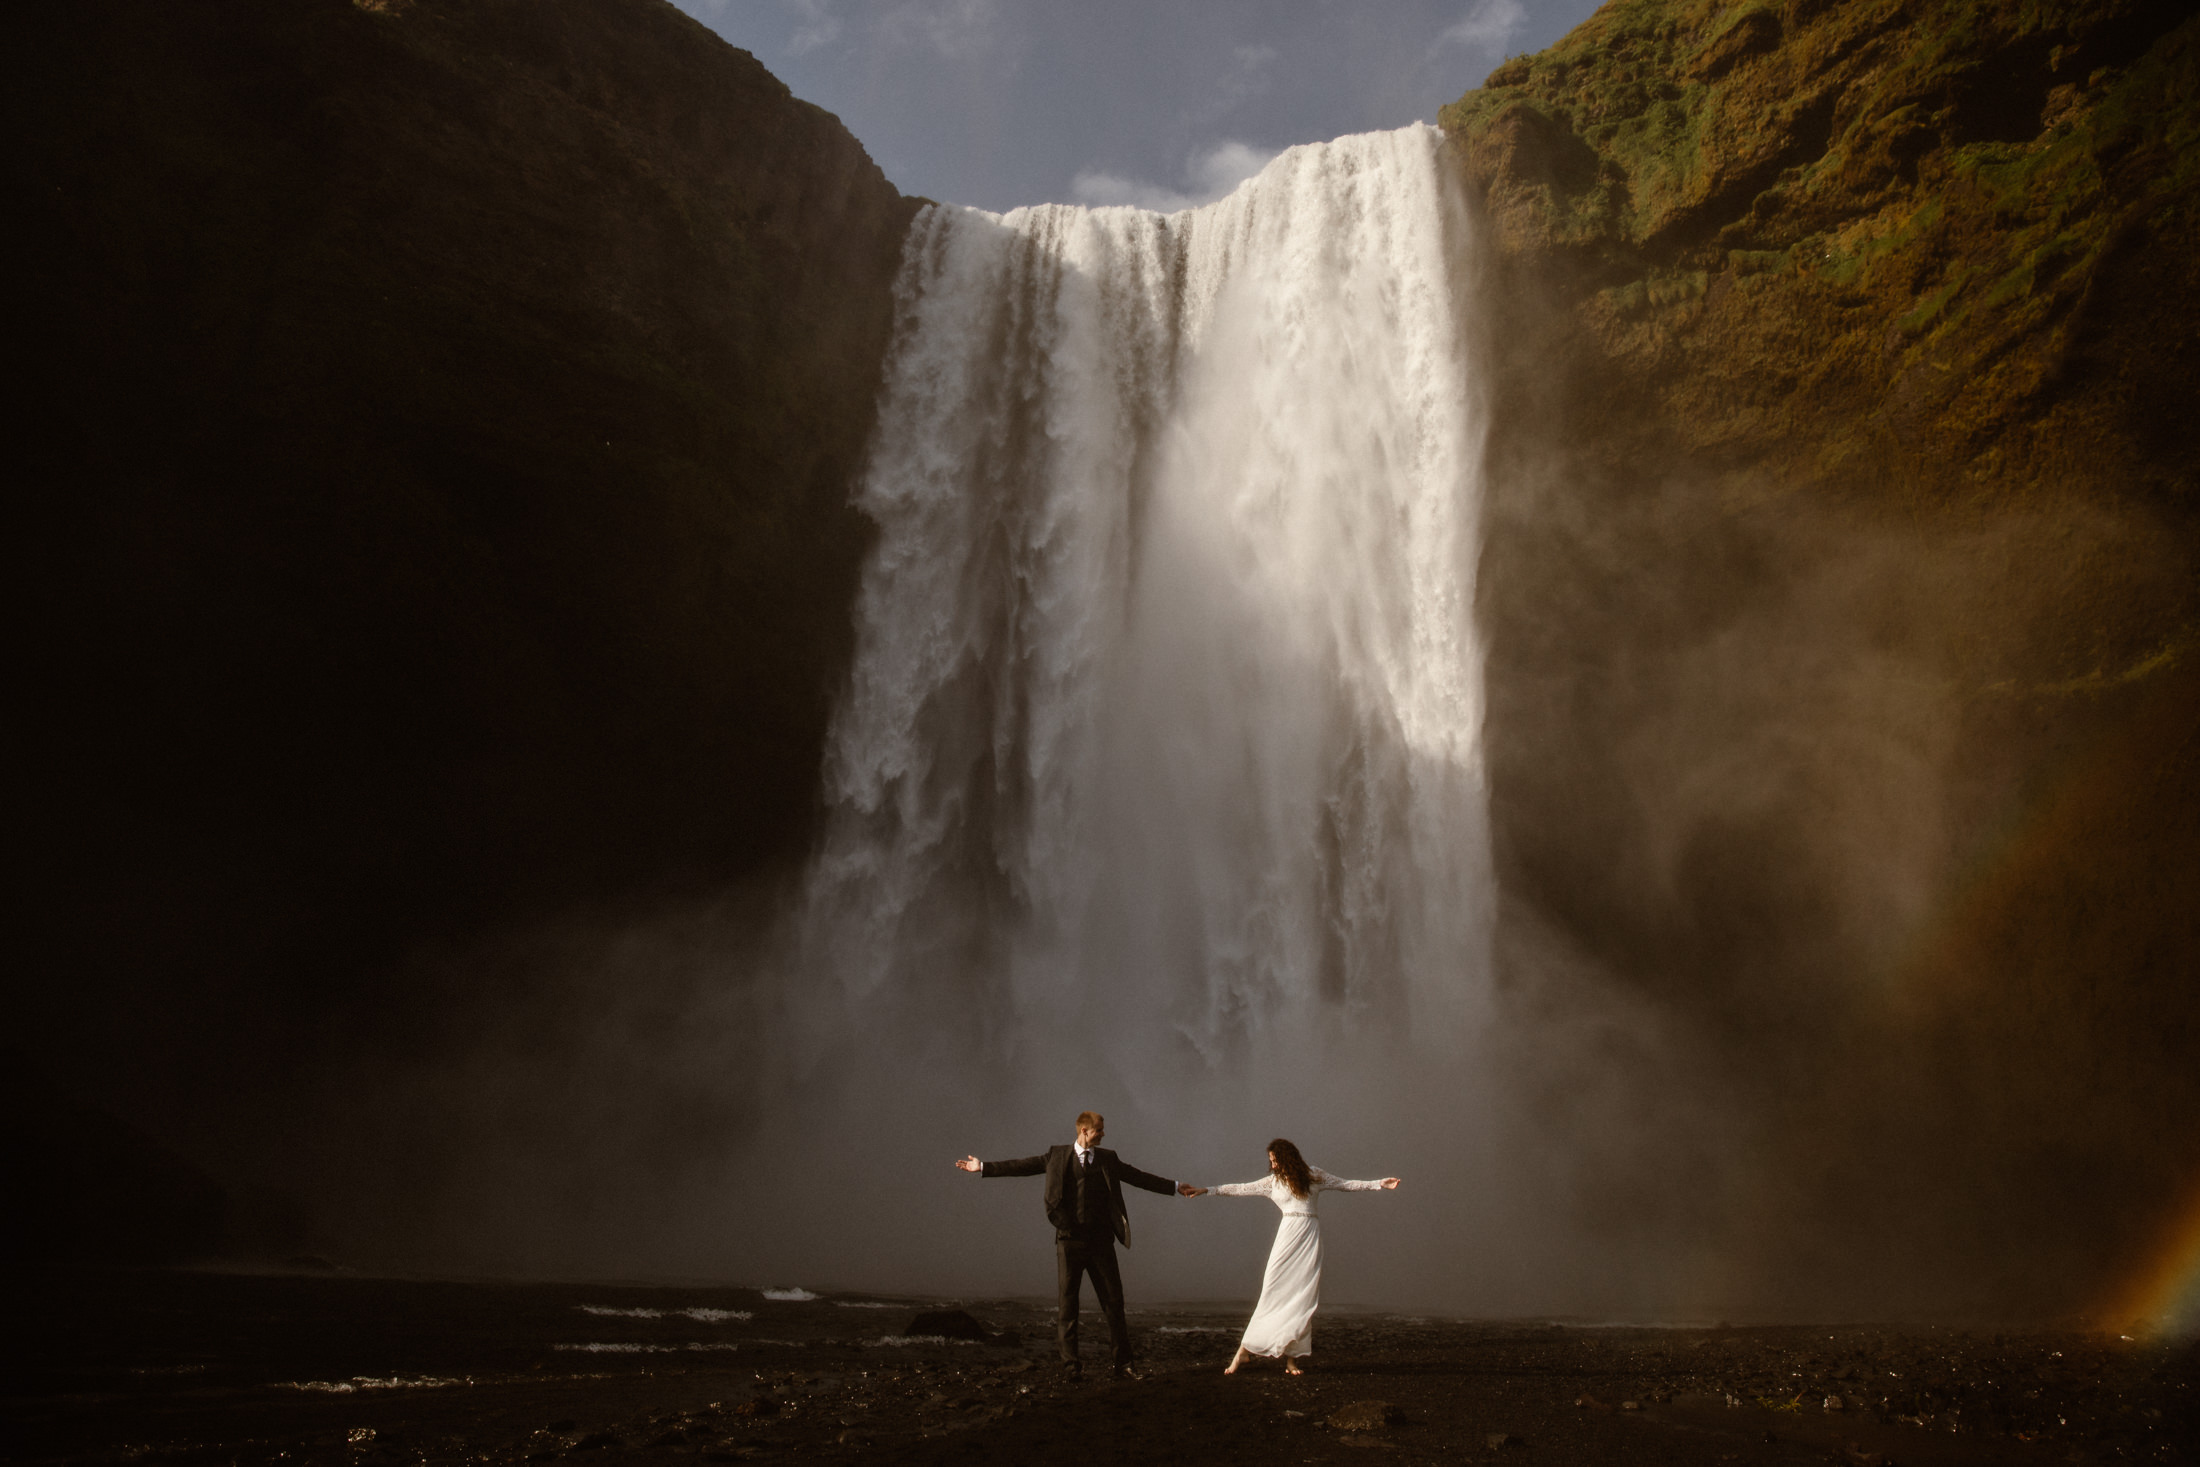 A couple celebrates their elopement in front of one of Iceland's biggest waterfalls. The dramatic landscape makes this the perfect place to elope!